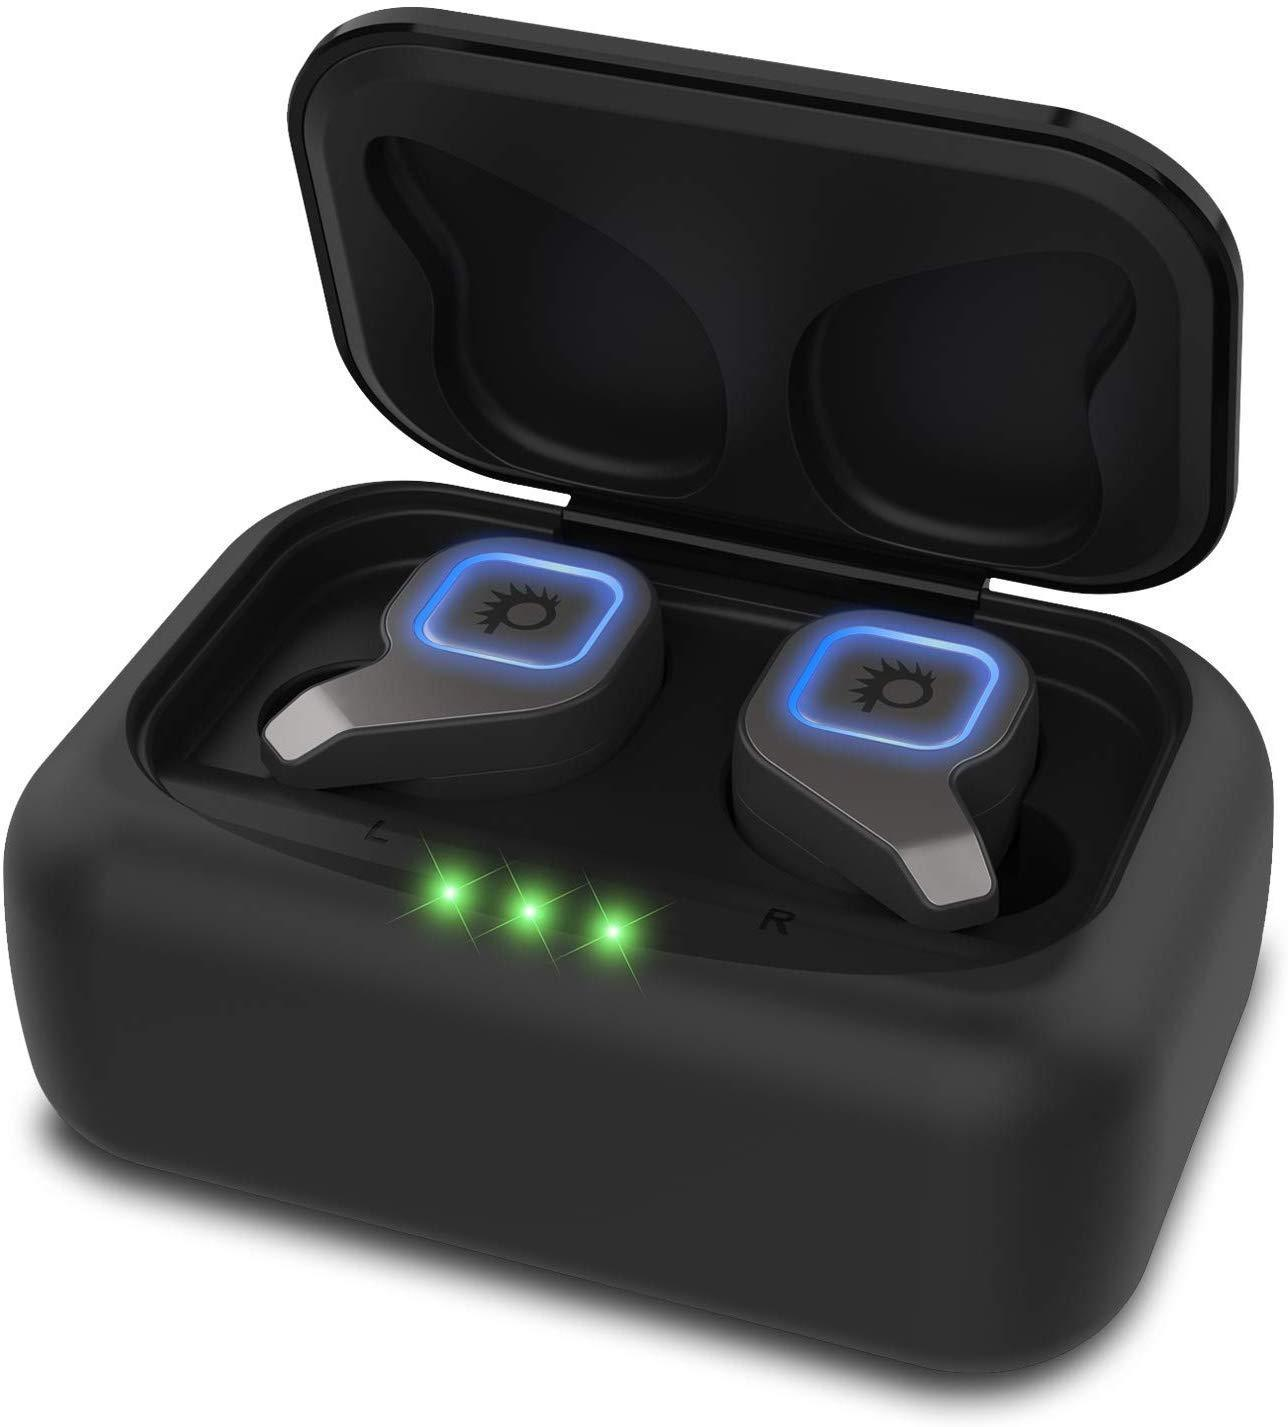 PunkBuds 2.0 True Wireless Earbuds, Mini Bluetooth Headphones W/ Charging Case & Built-In Noise Cancelling Mic. [Black]